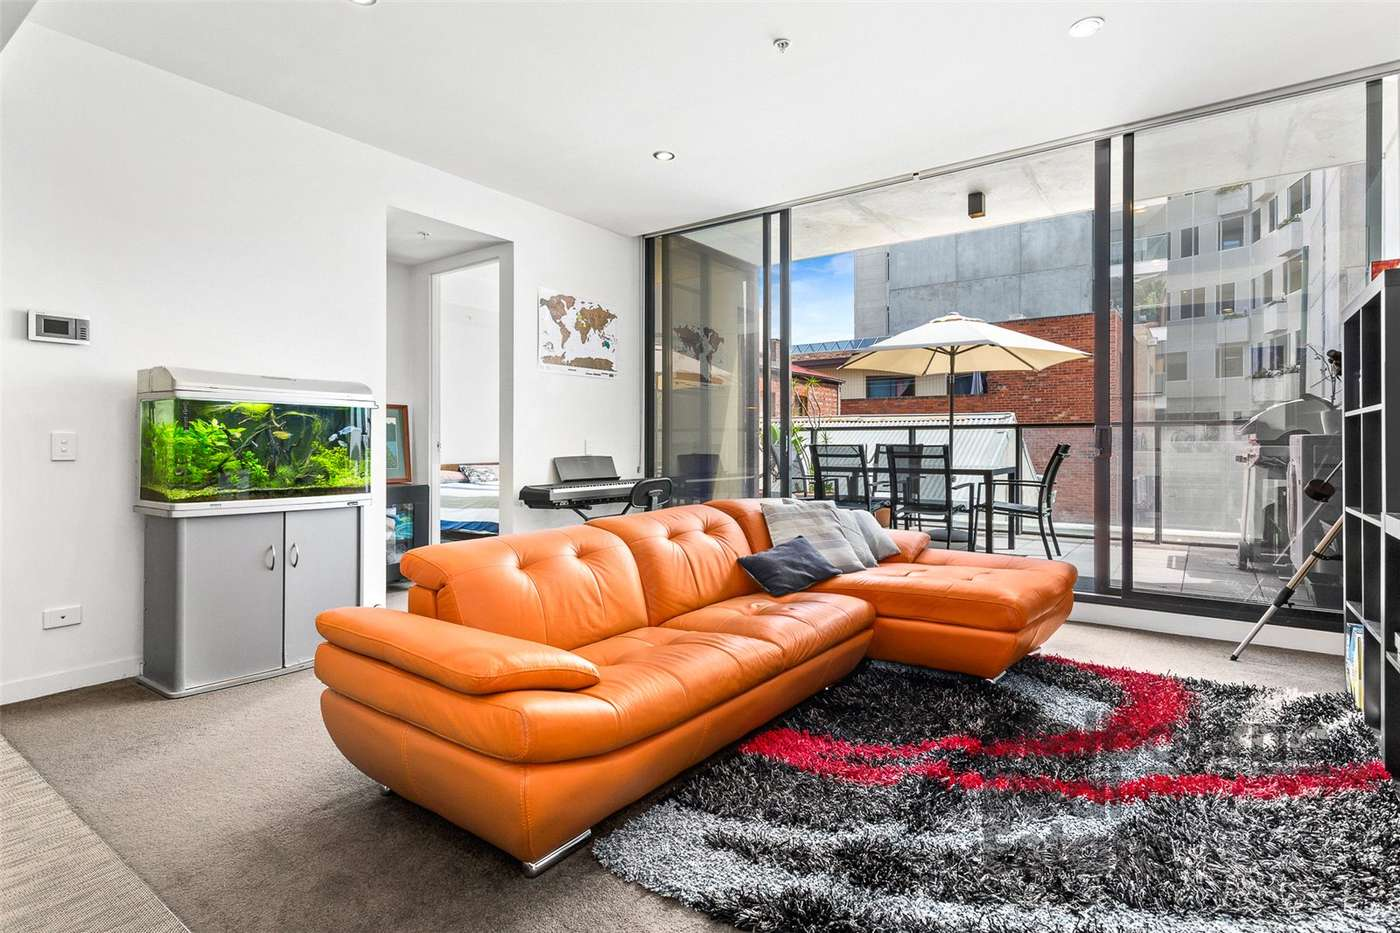 Main view of Homely apartment listing, 118/253 Bridge Road, Richmond, VIC 3121